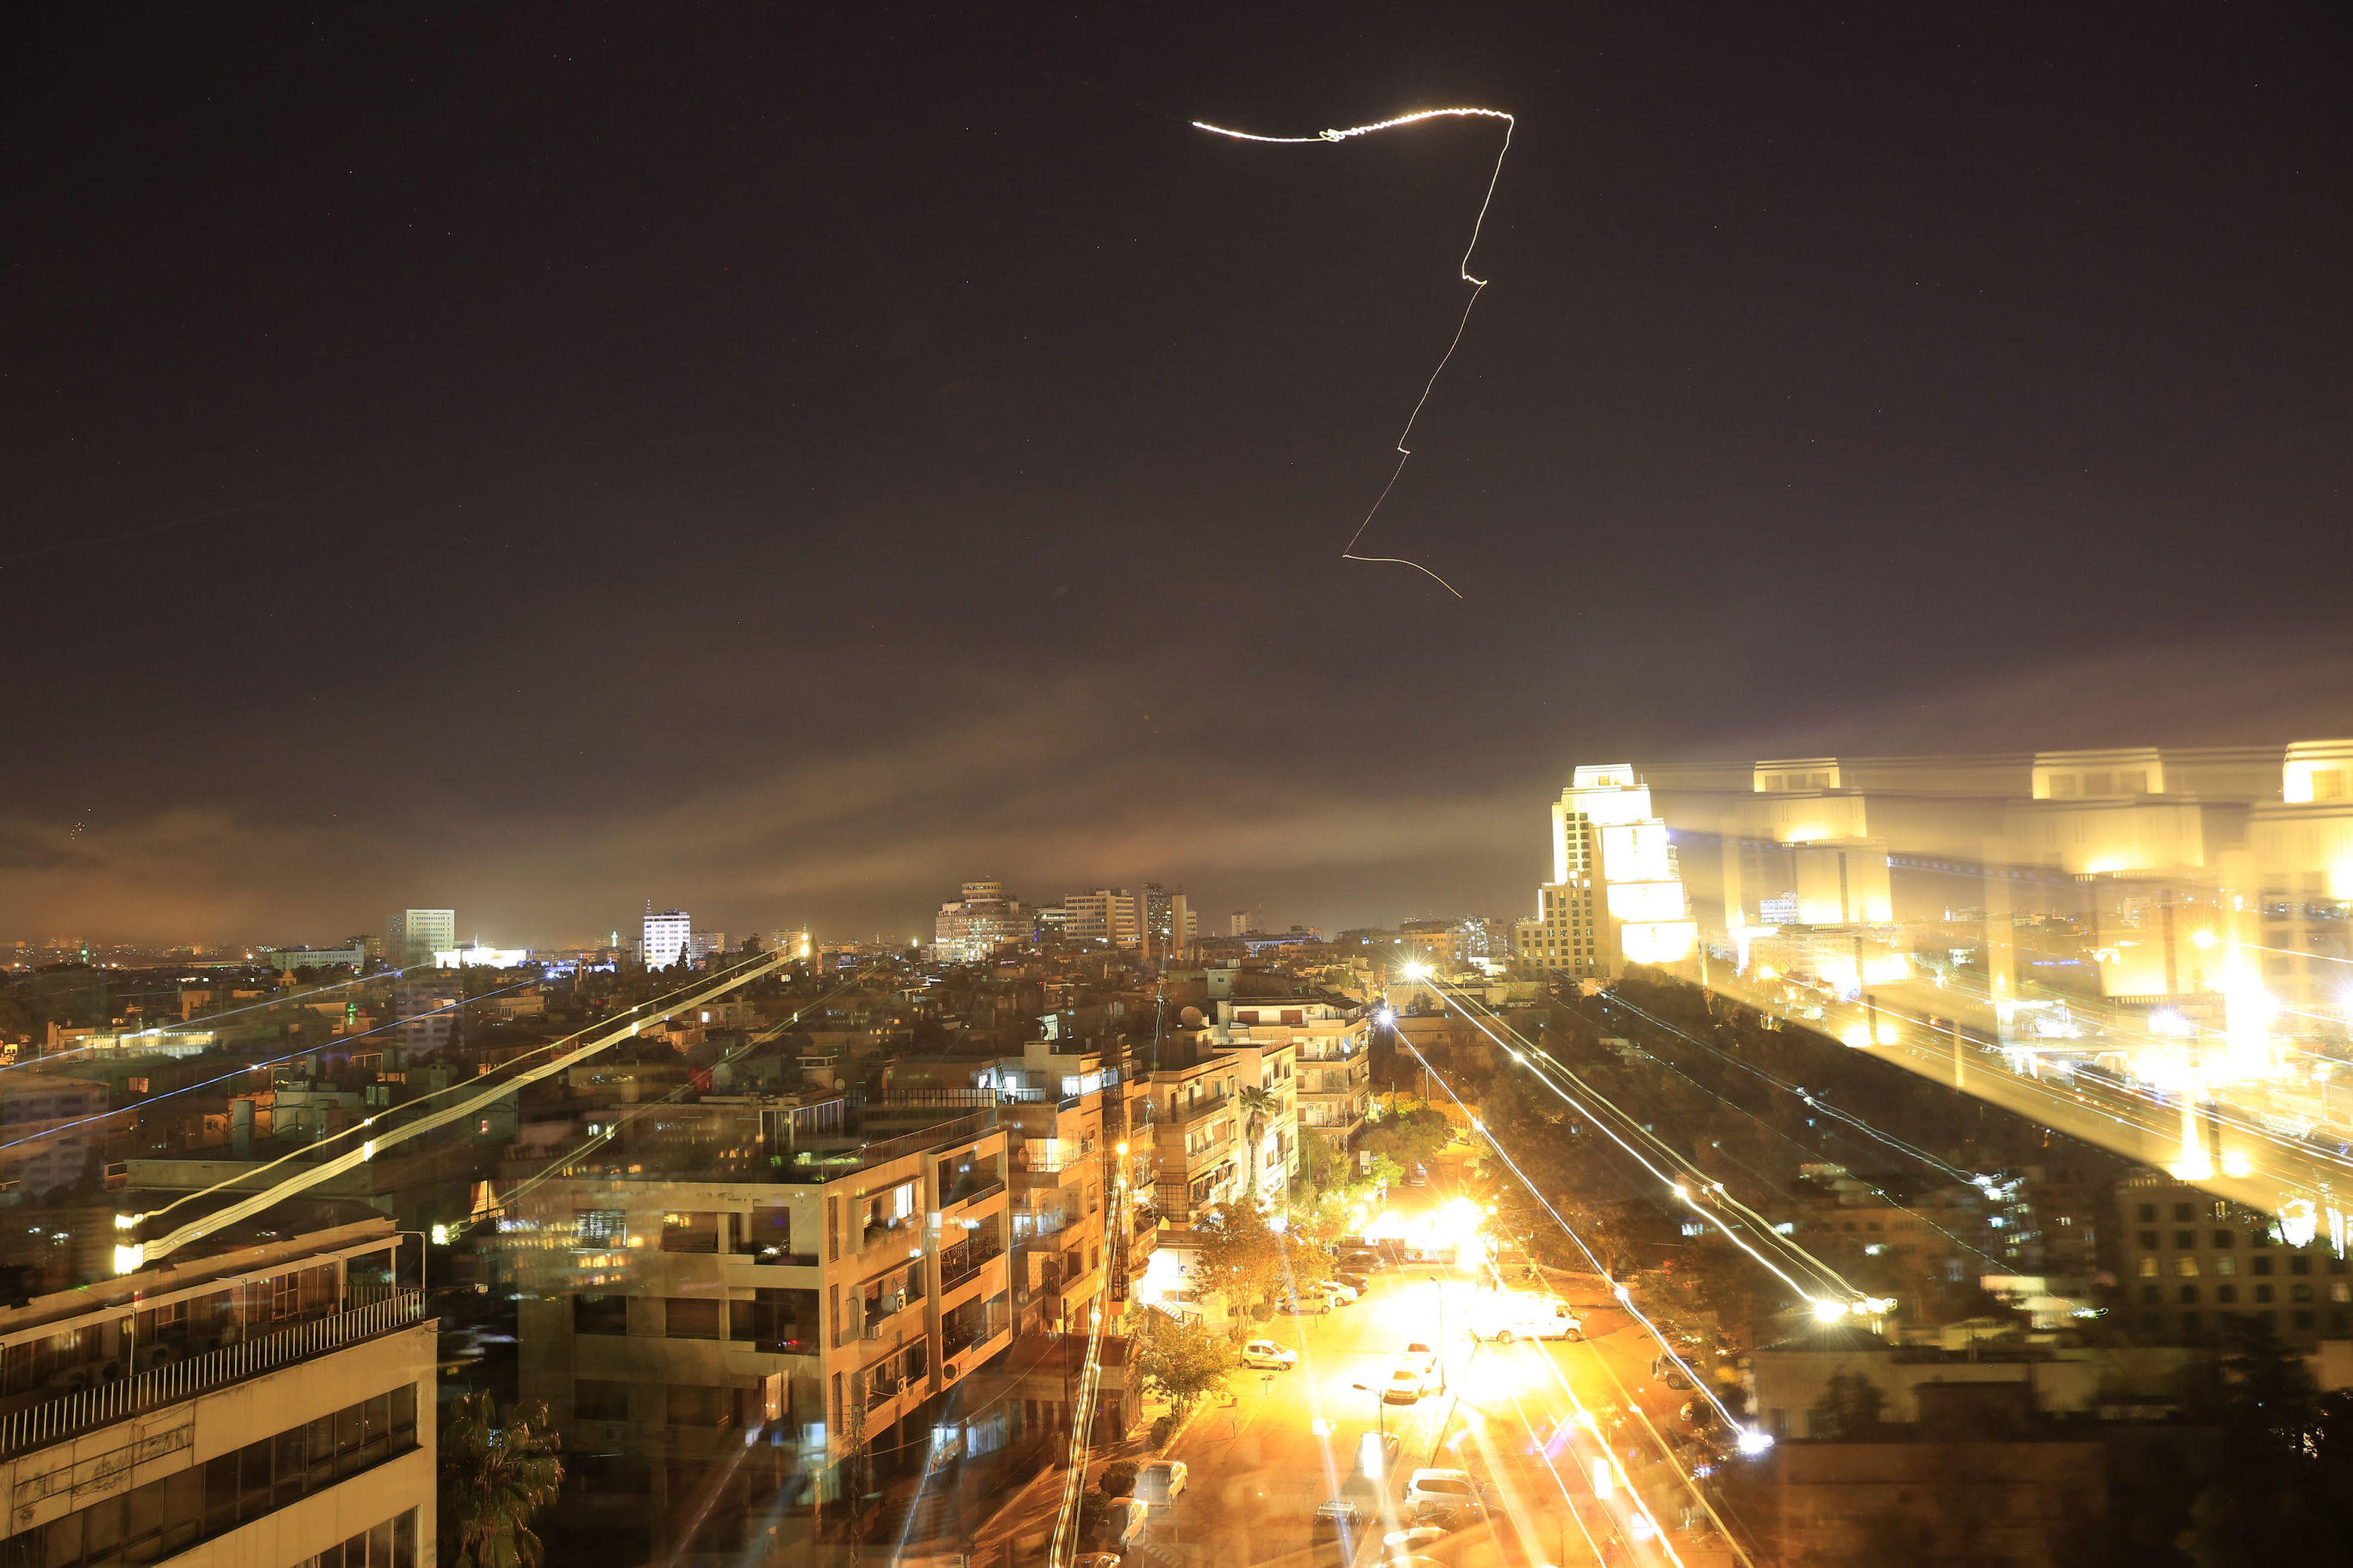 Damascus is seen as the U.S. launches an attack on Syria targeting different parts of the capital early Saturday, April 14, 2018. Syria's capital has been rocked by loud explosions that lit up the sky with heavy smoke as U.S. President Donald Trump announced airstrikes in retaliation for the country's alleged use of chemical weapons. (AP Photo/Hassan Ammar)